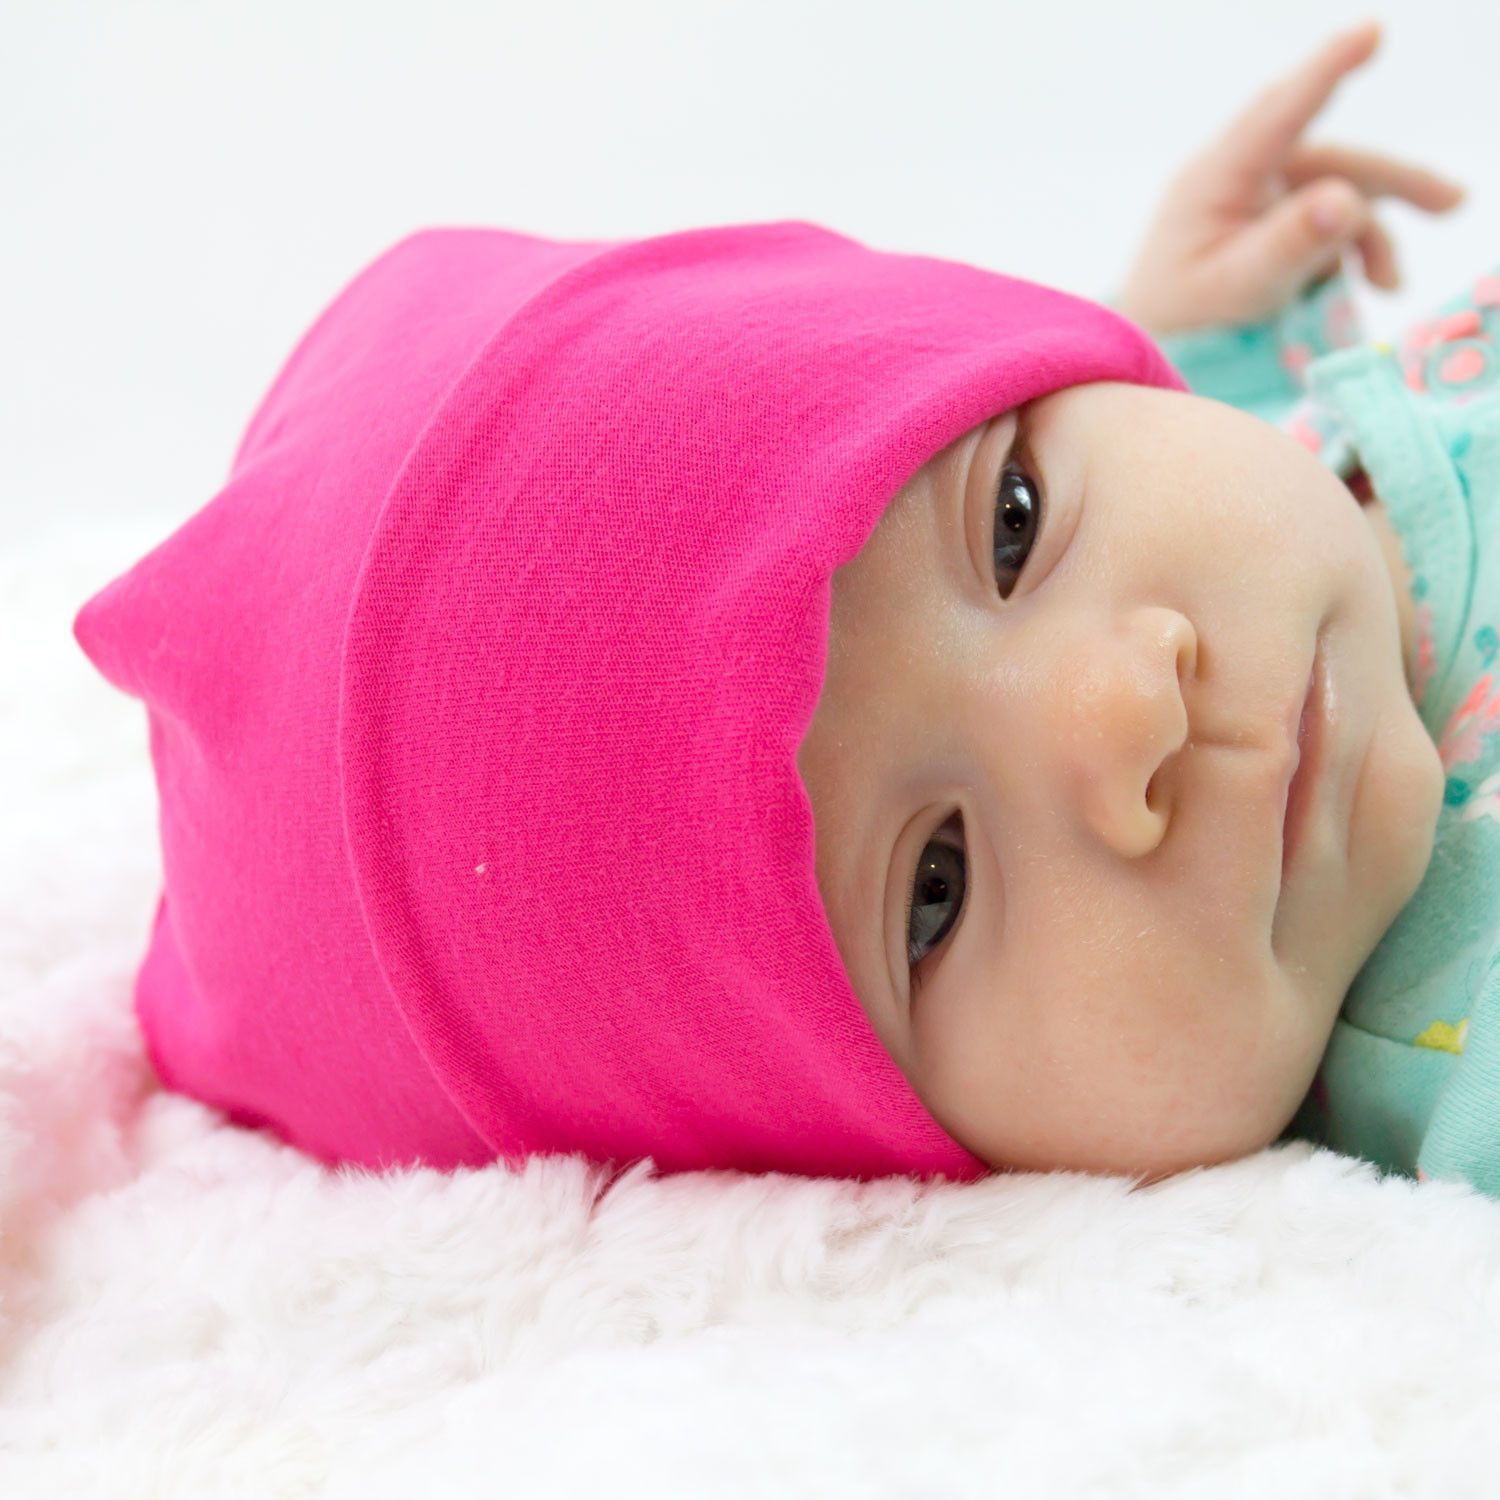 newborn knit hat pattern